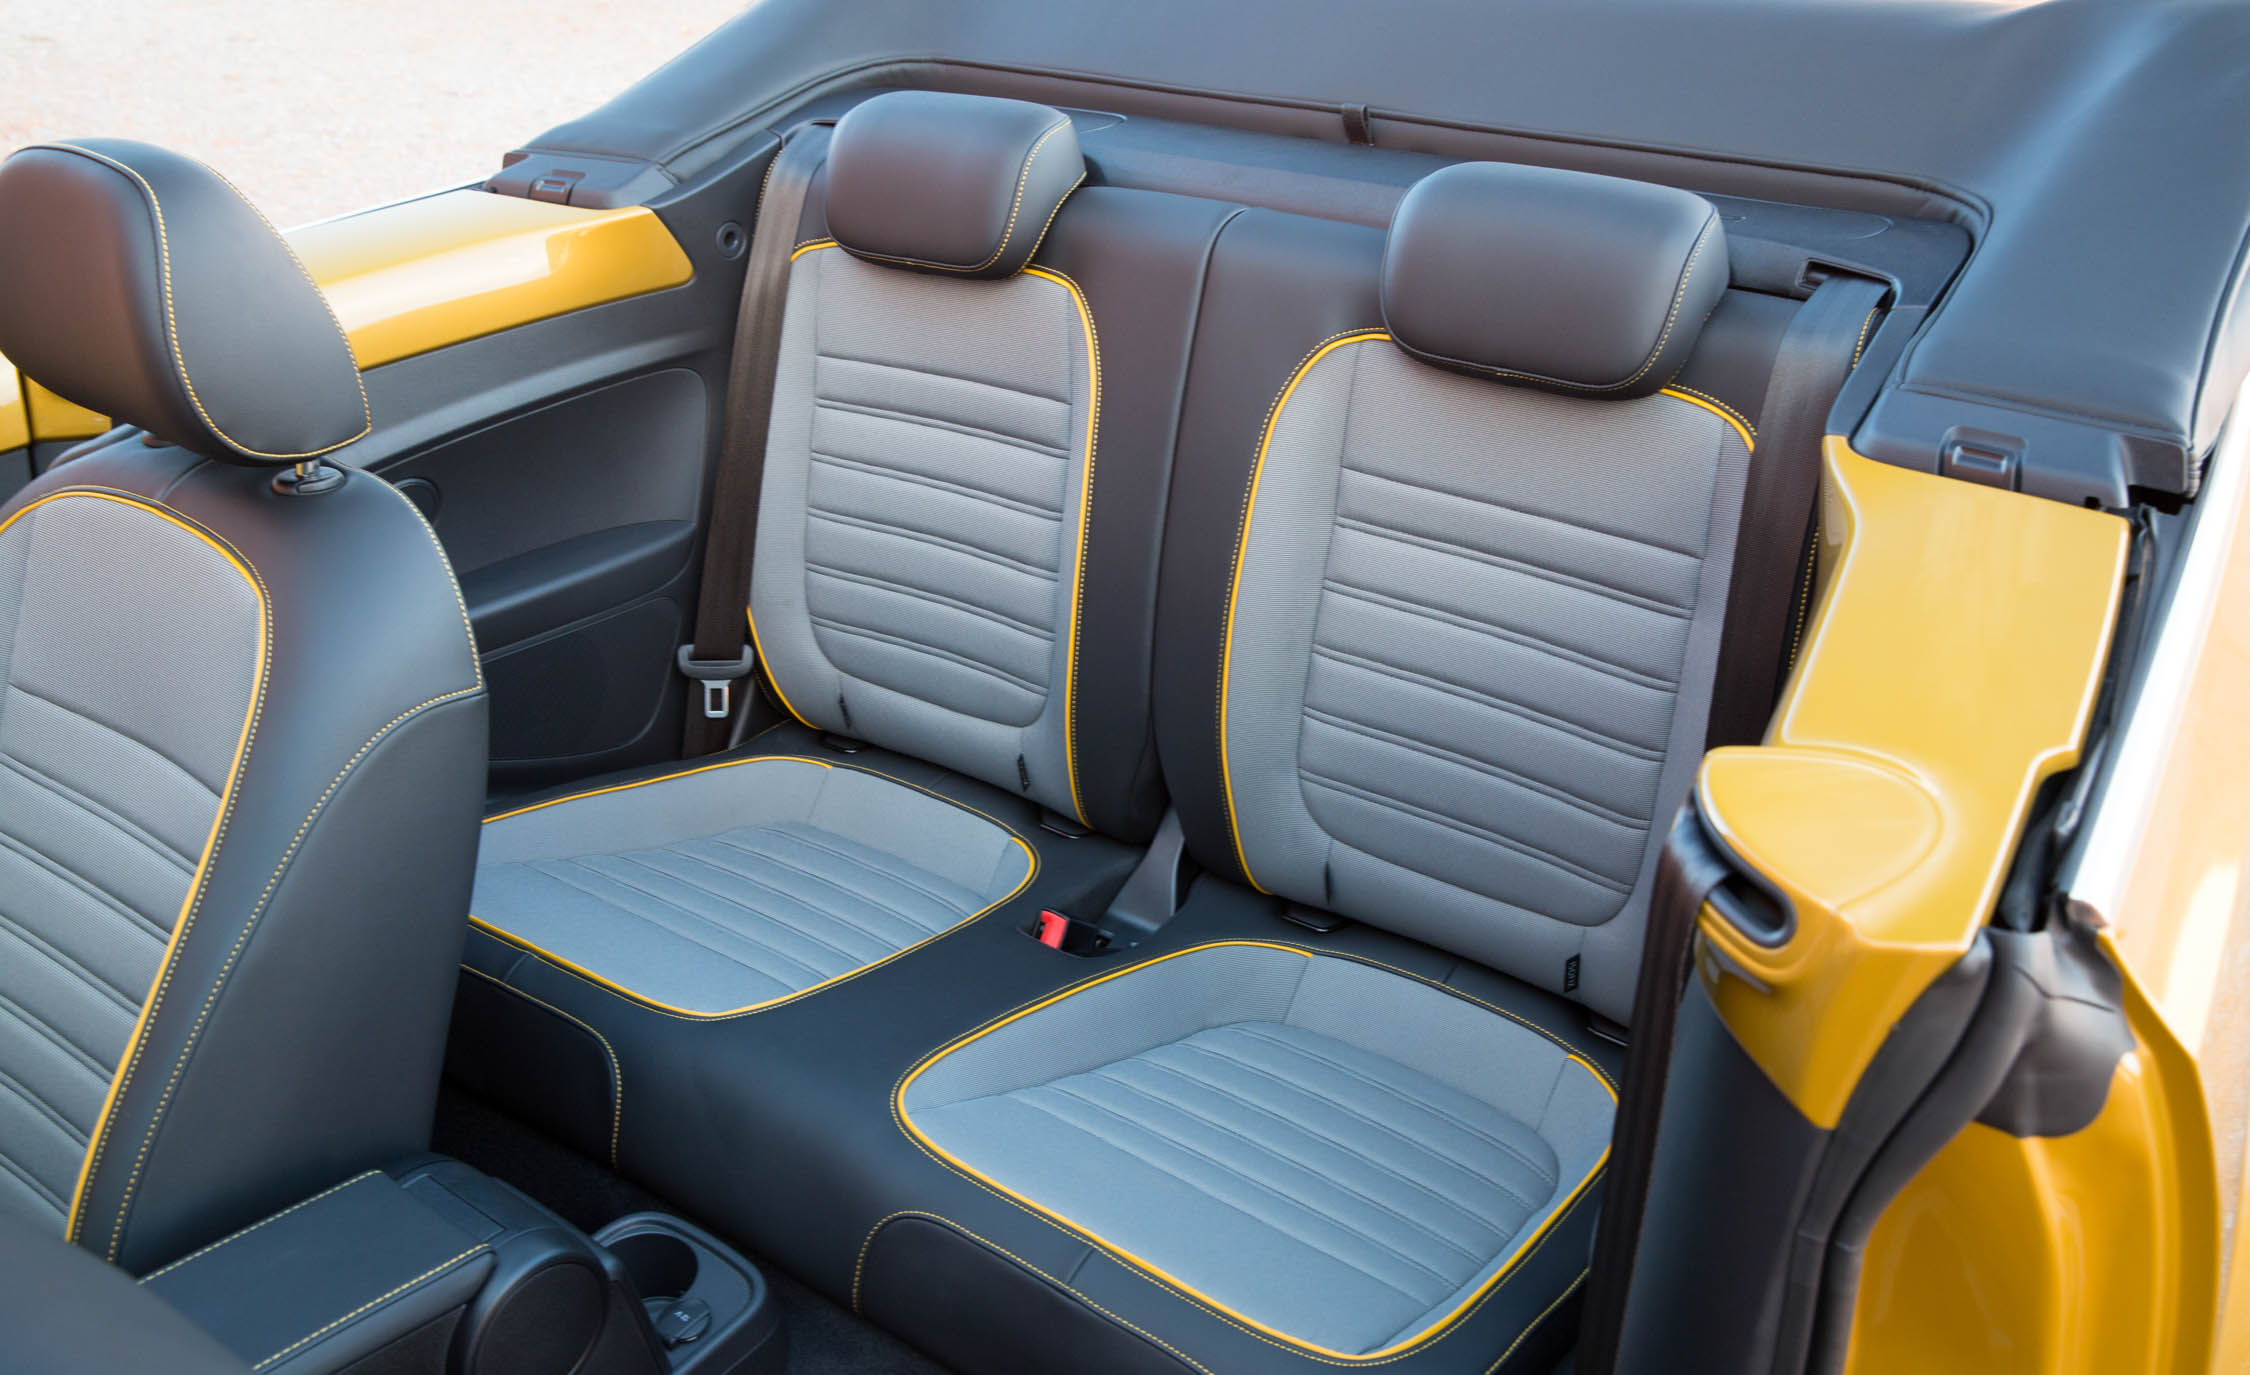 2016 Volkswagen Beetle Dune Interior Rear Seats (Photo 28 of 32)